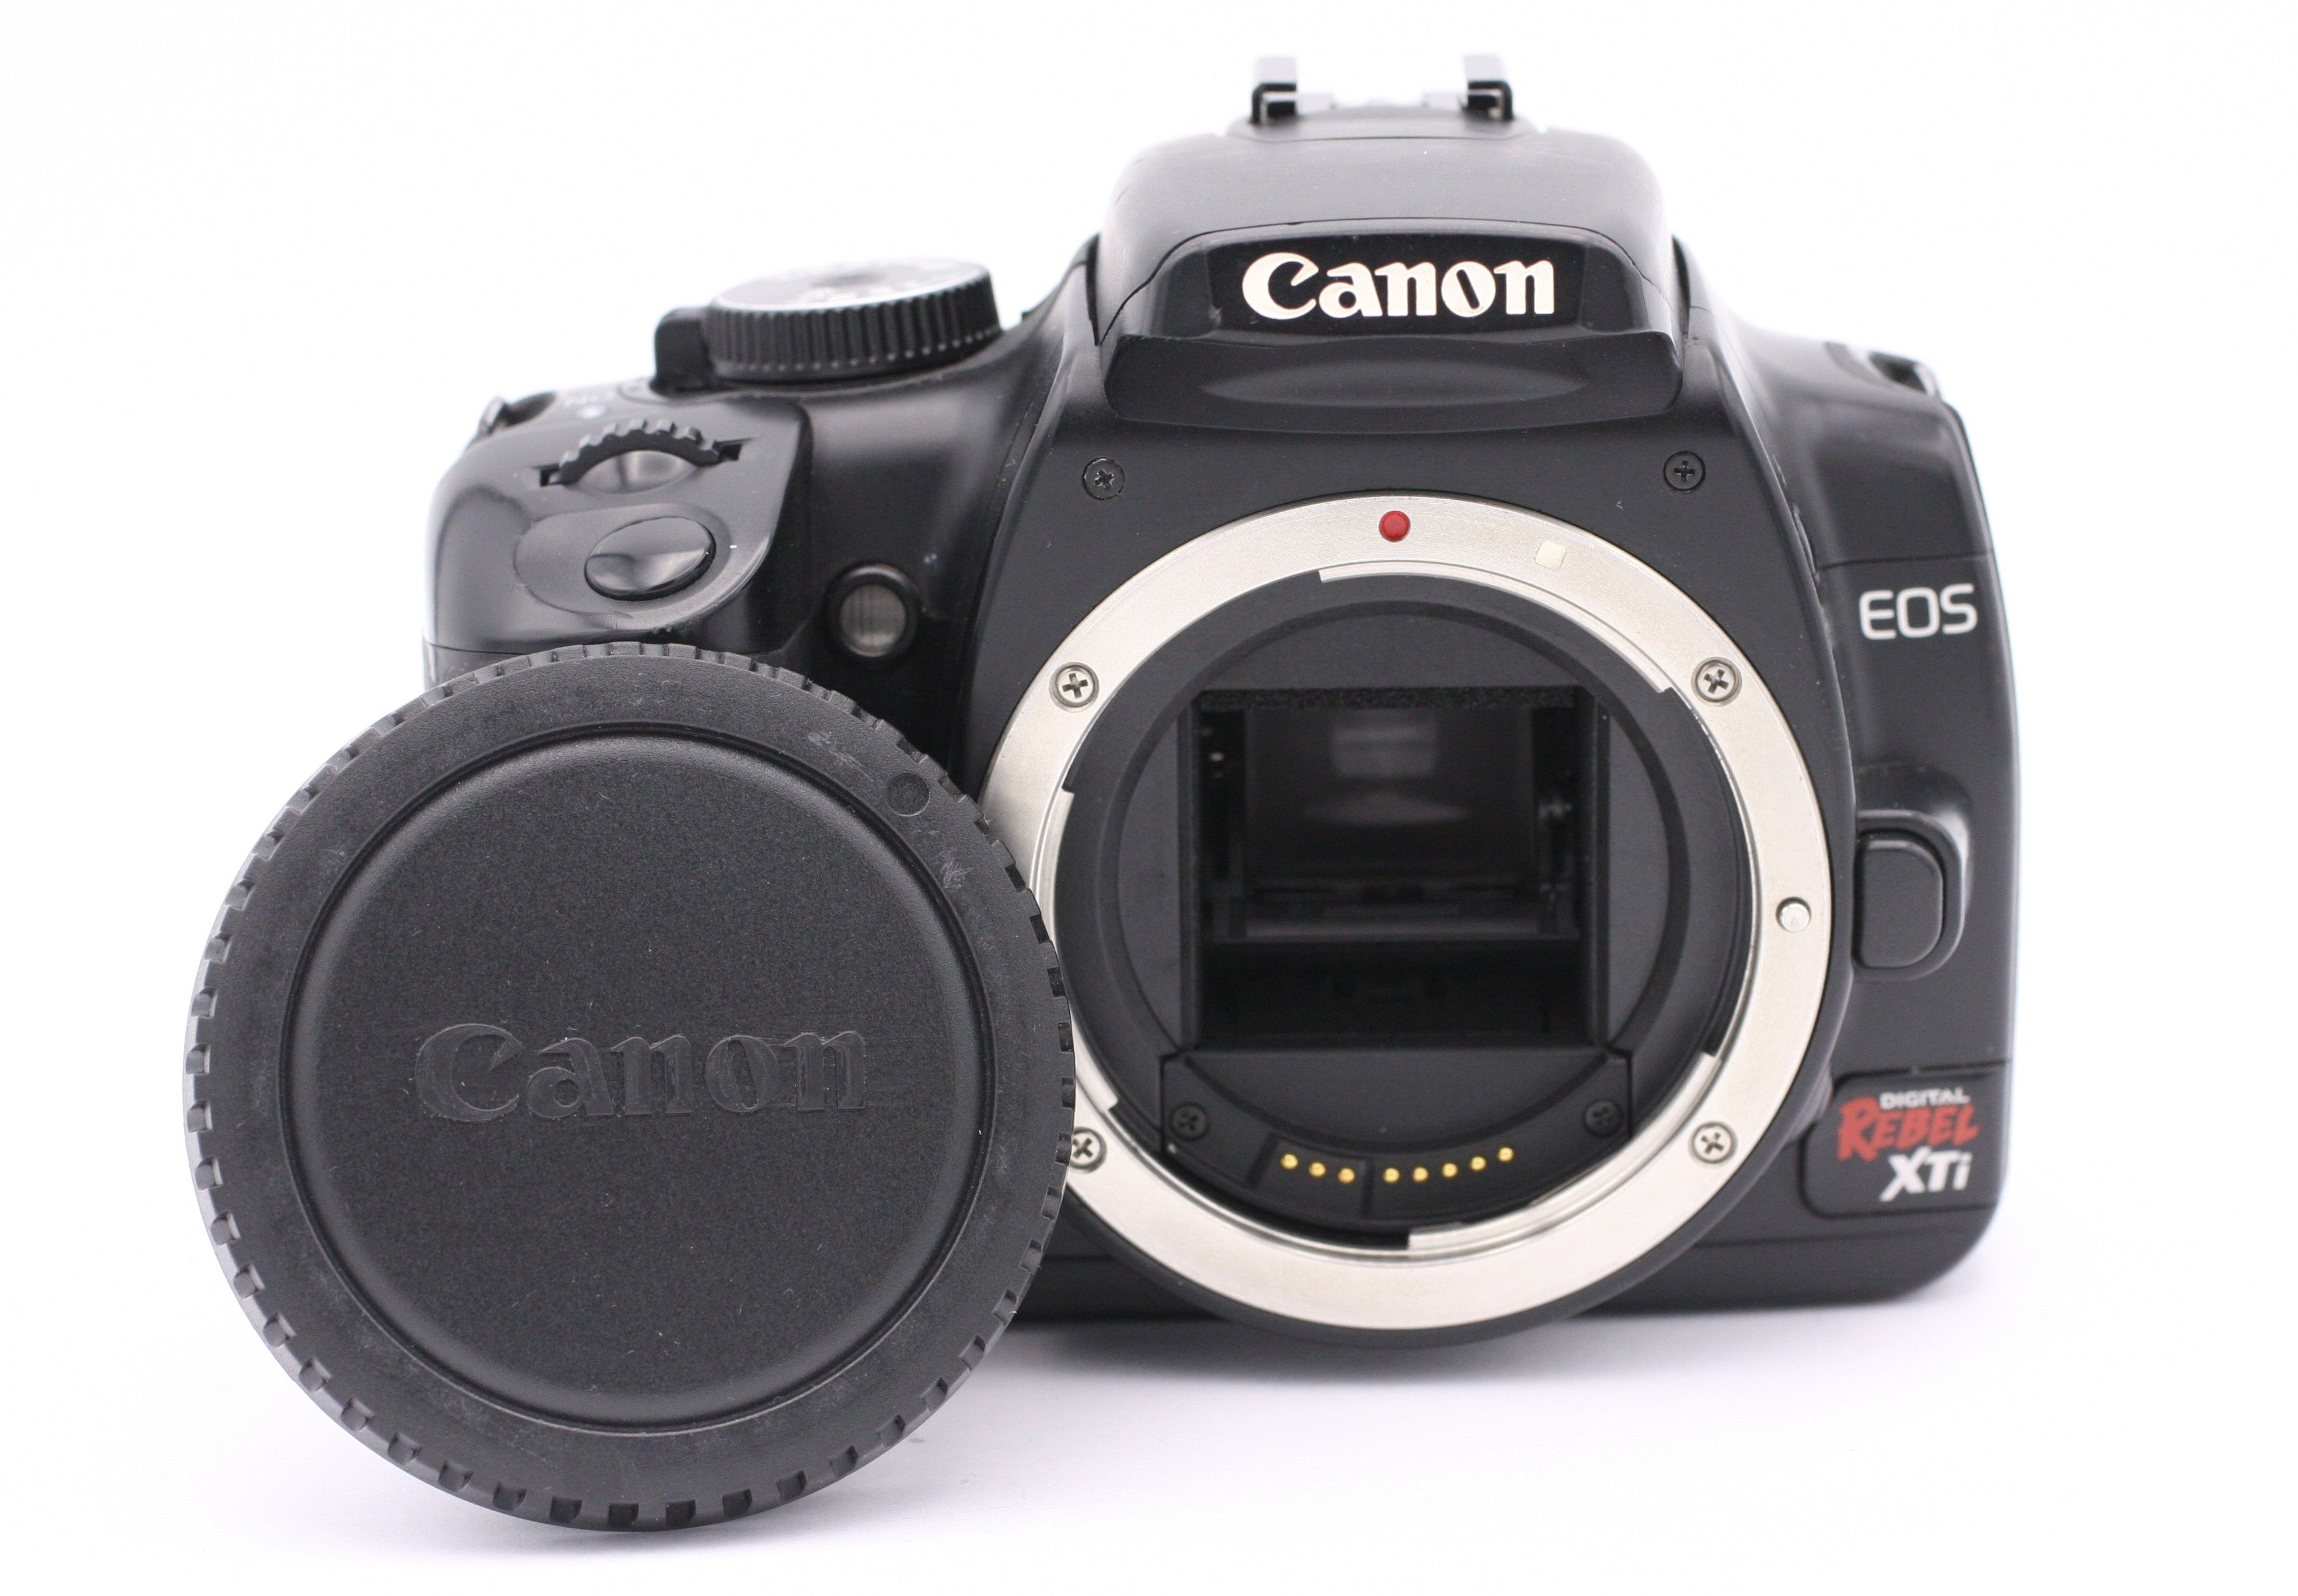 Details about Canon EOS Digital Rebel XTi / EOS 400D 10 1 MP Digital SLR  Camera - (Body Only)